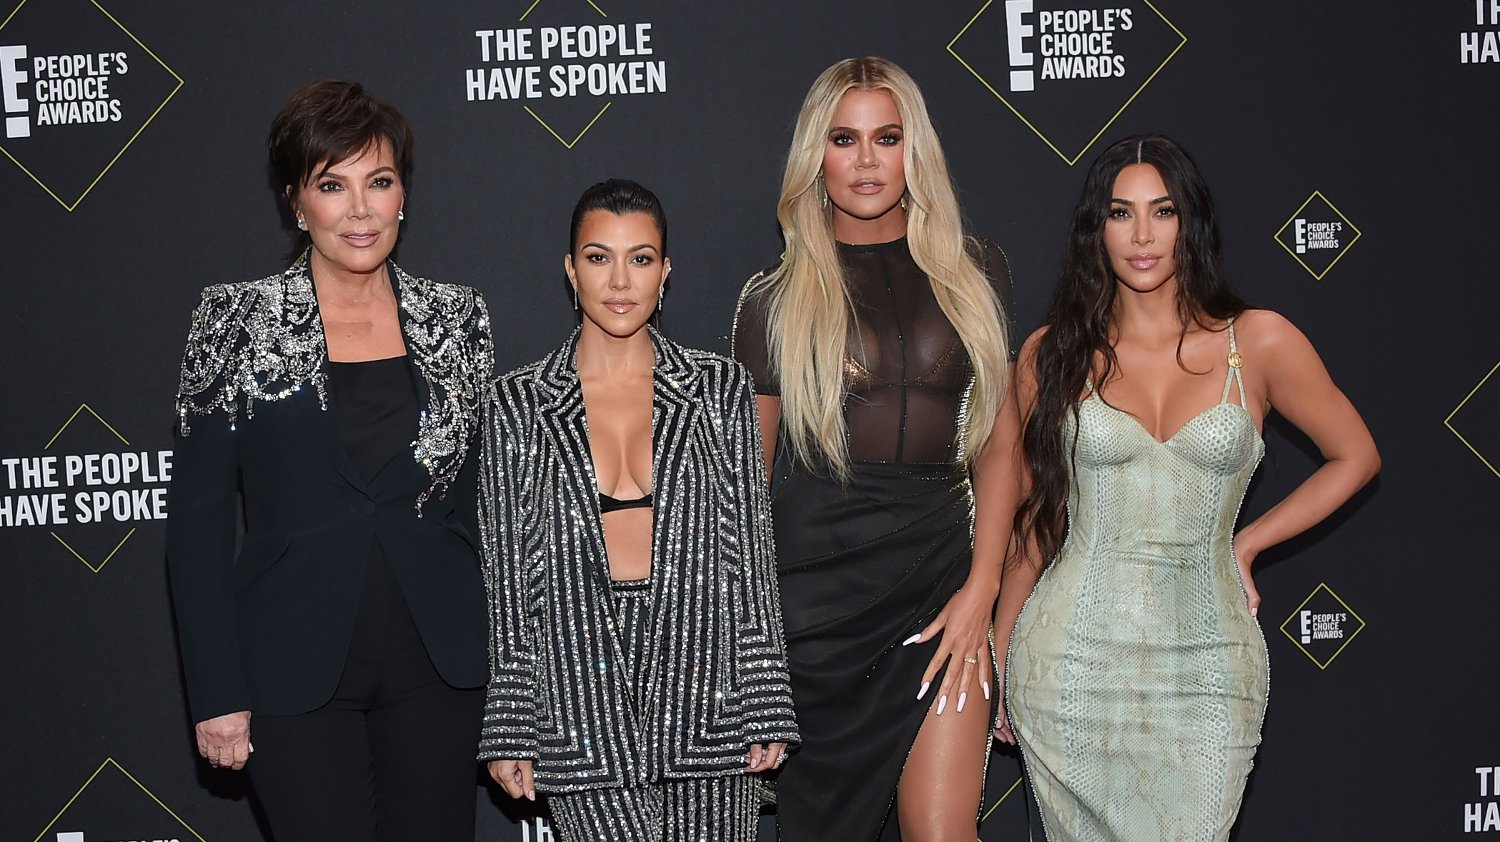 Kris Jenner, Kourtney Kardashian, Khloe Kardashian and Kim Kardashian at the 2019 E! People's Choice Awards held at Barker Hanger on November 10, 2019 in Santa Monica,